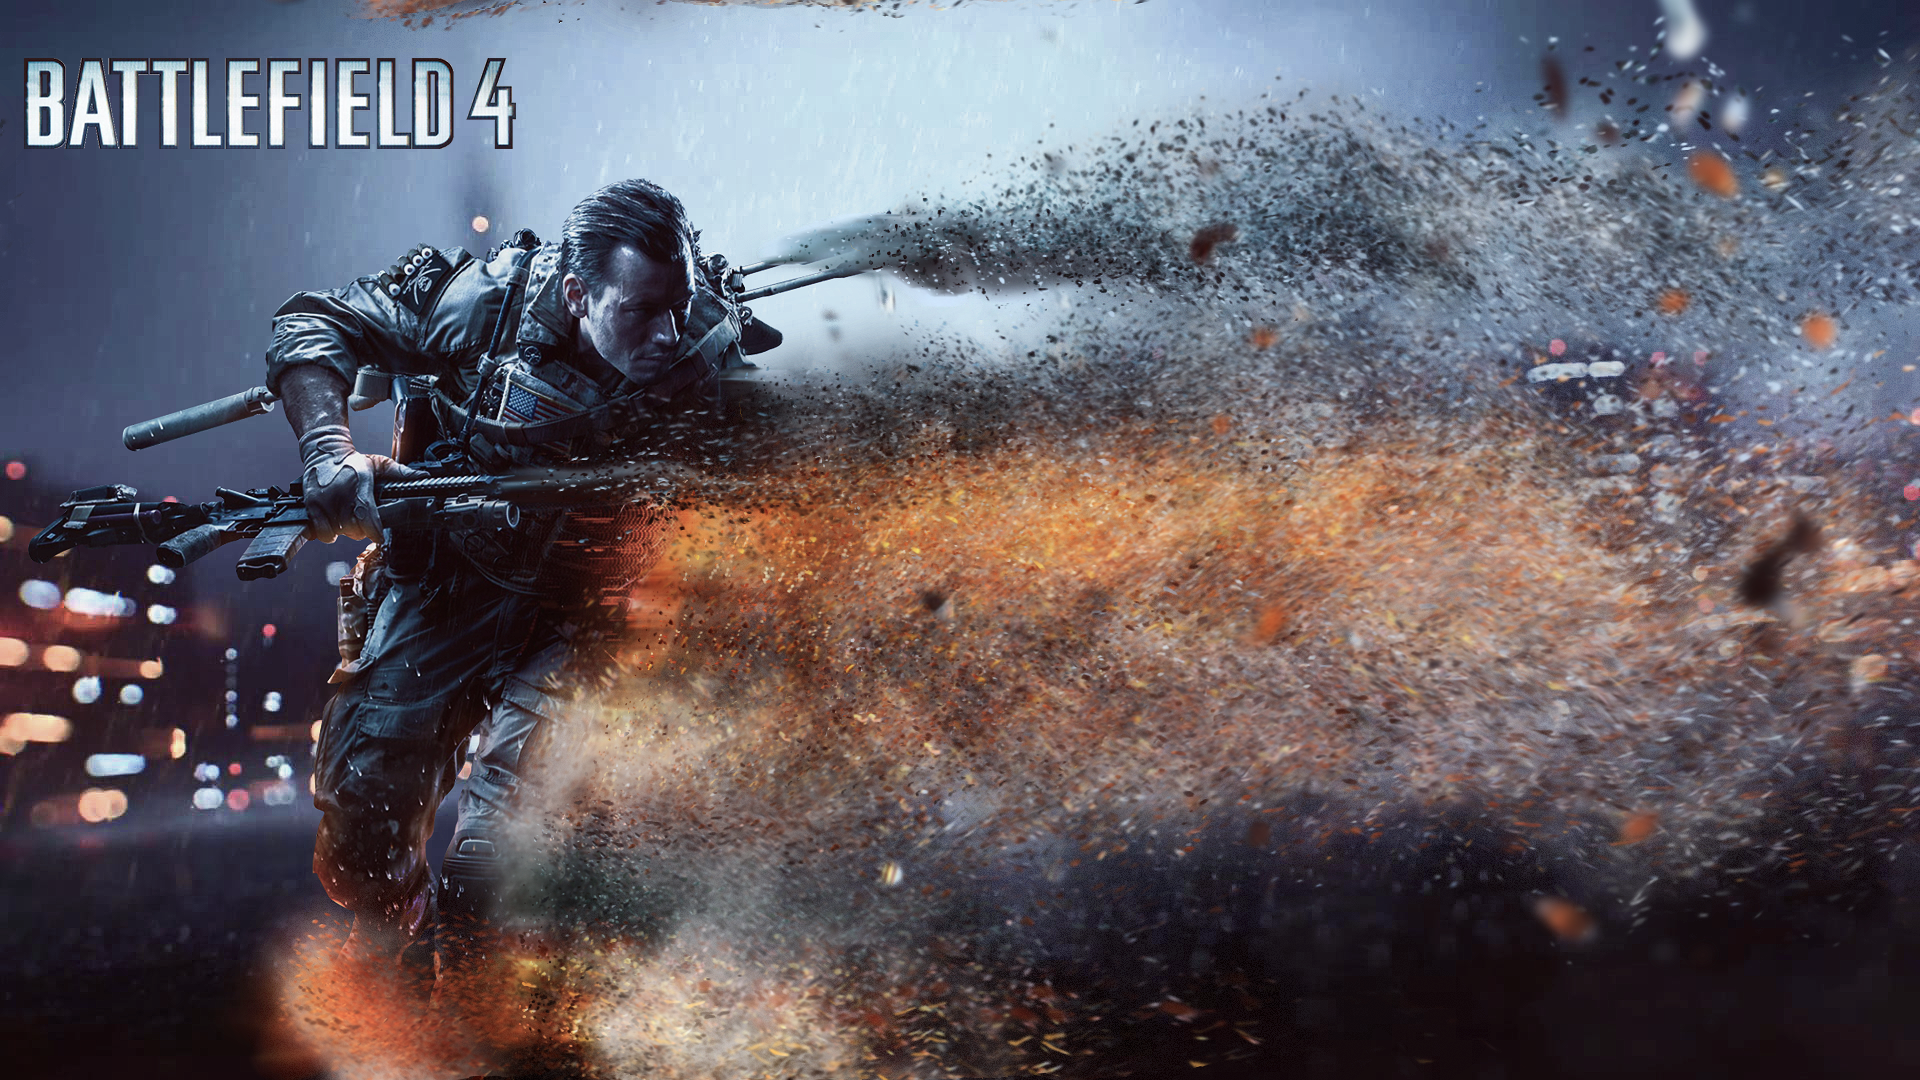 General 1920x1080 battle Battlefield Battlefield 4 Battlefield Hardline Battlefield 3 sand effects logo text video games